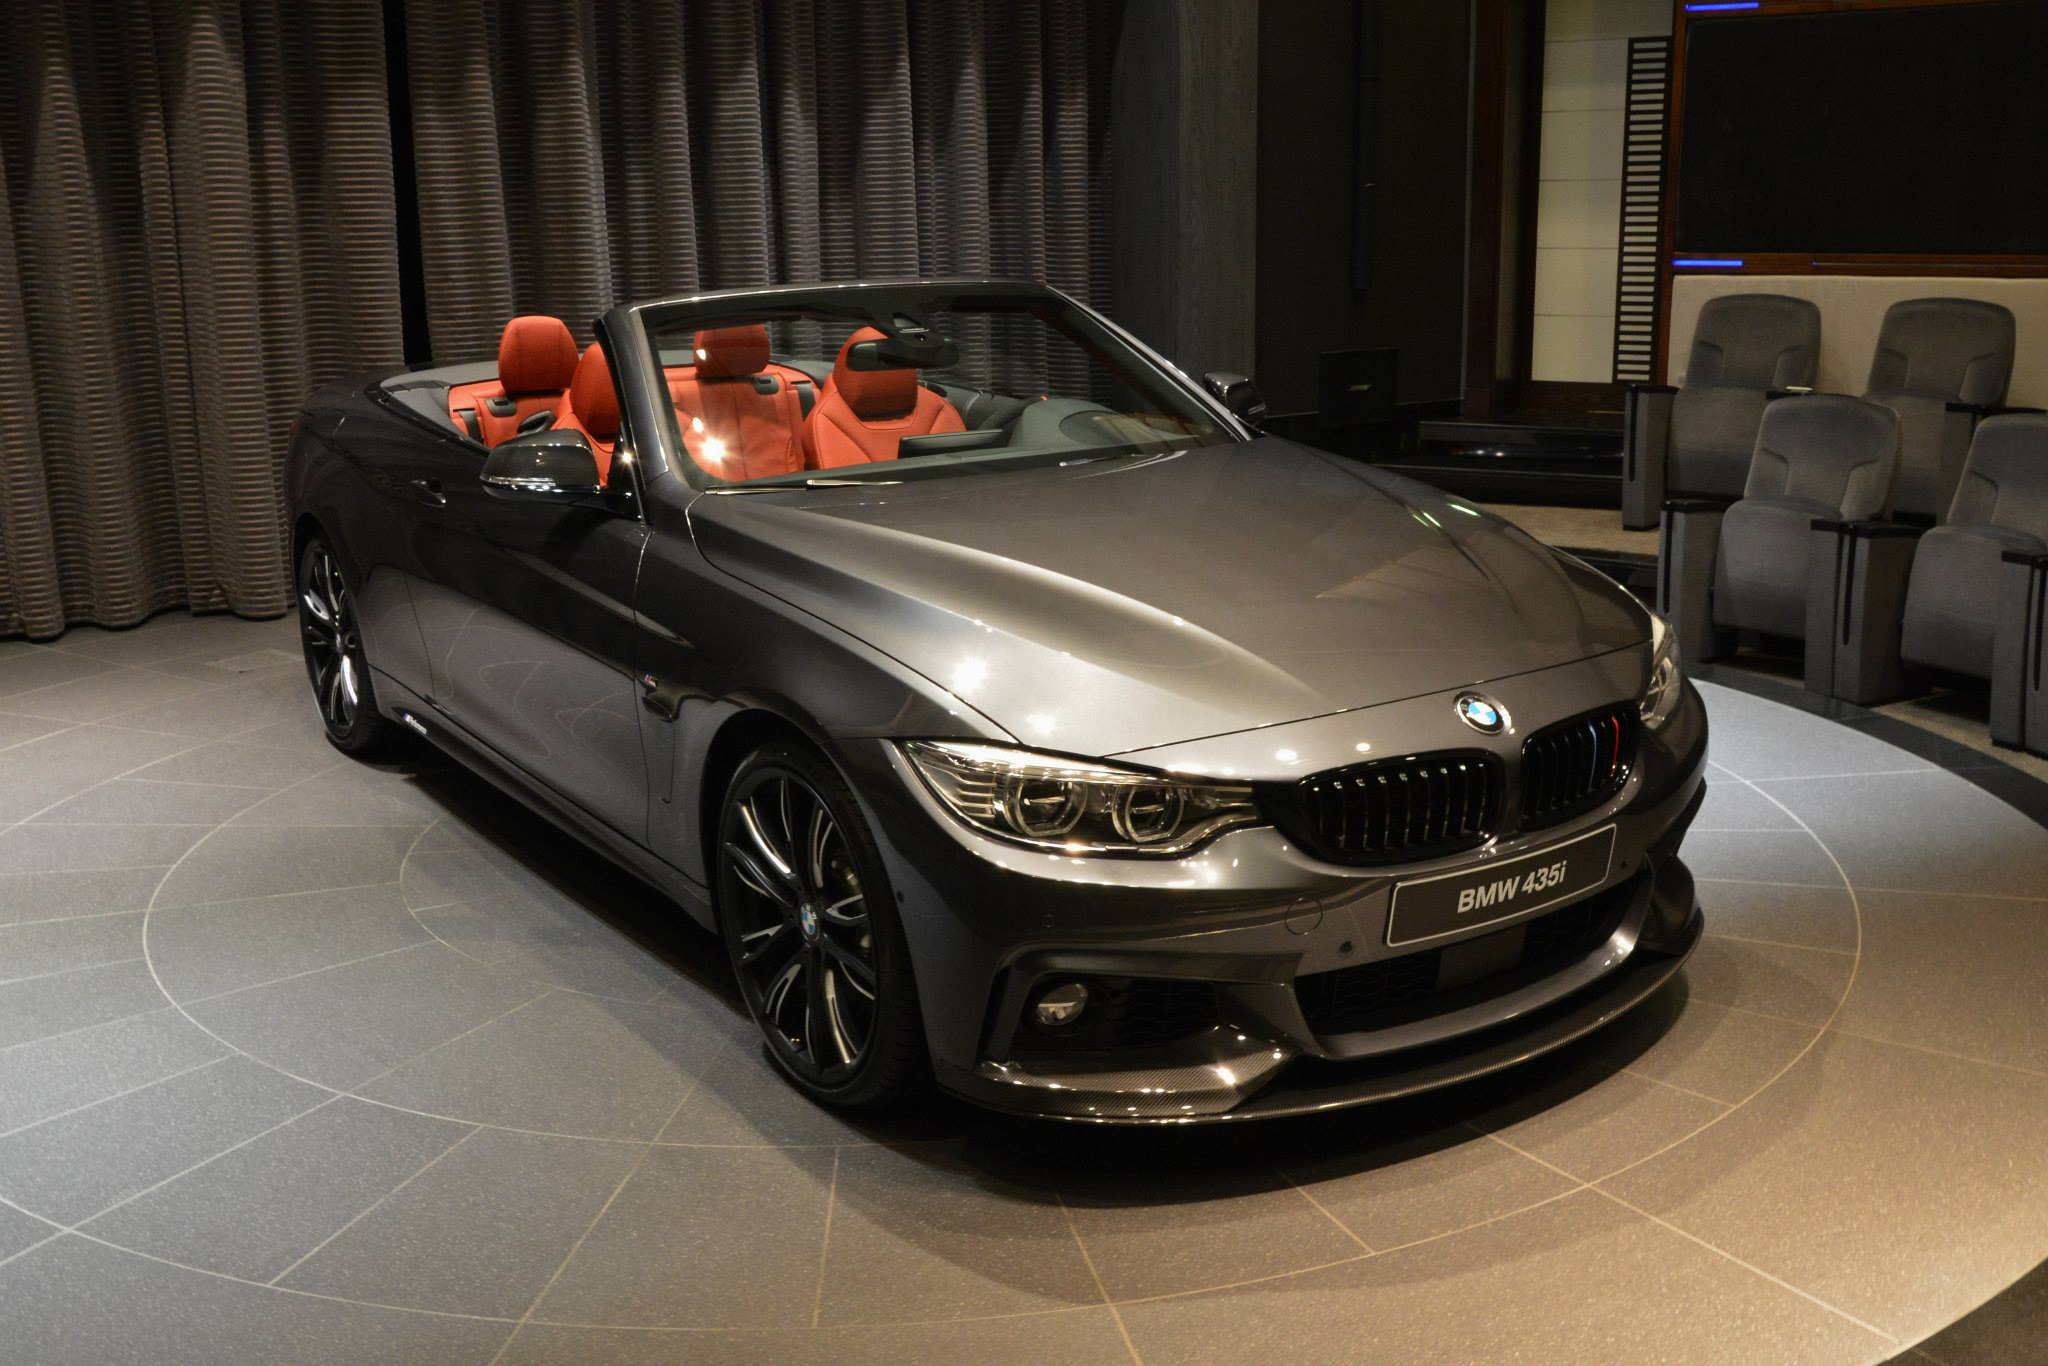 Bmw 435i Convertible With M Performance Parts